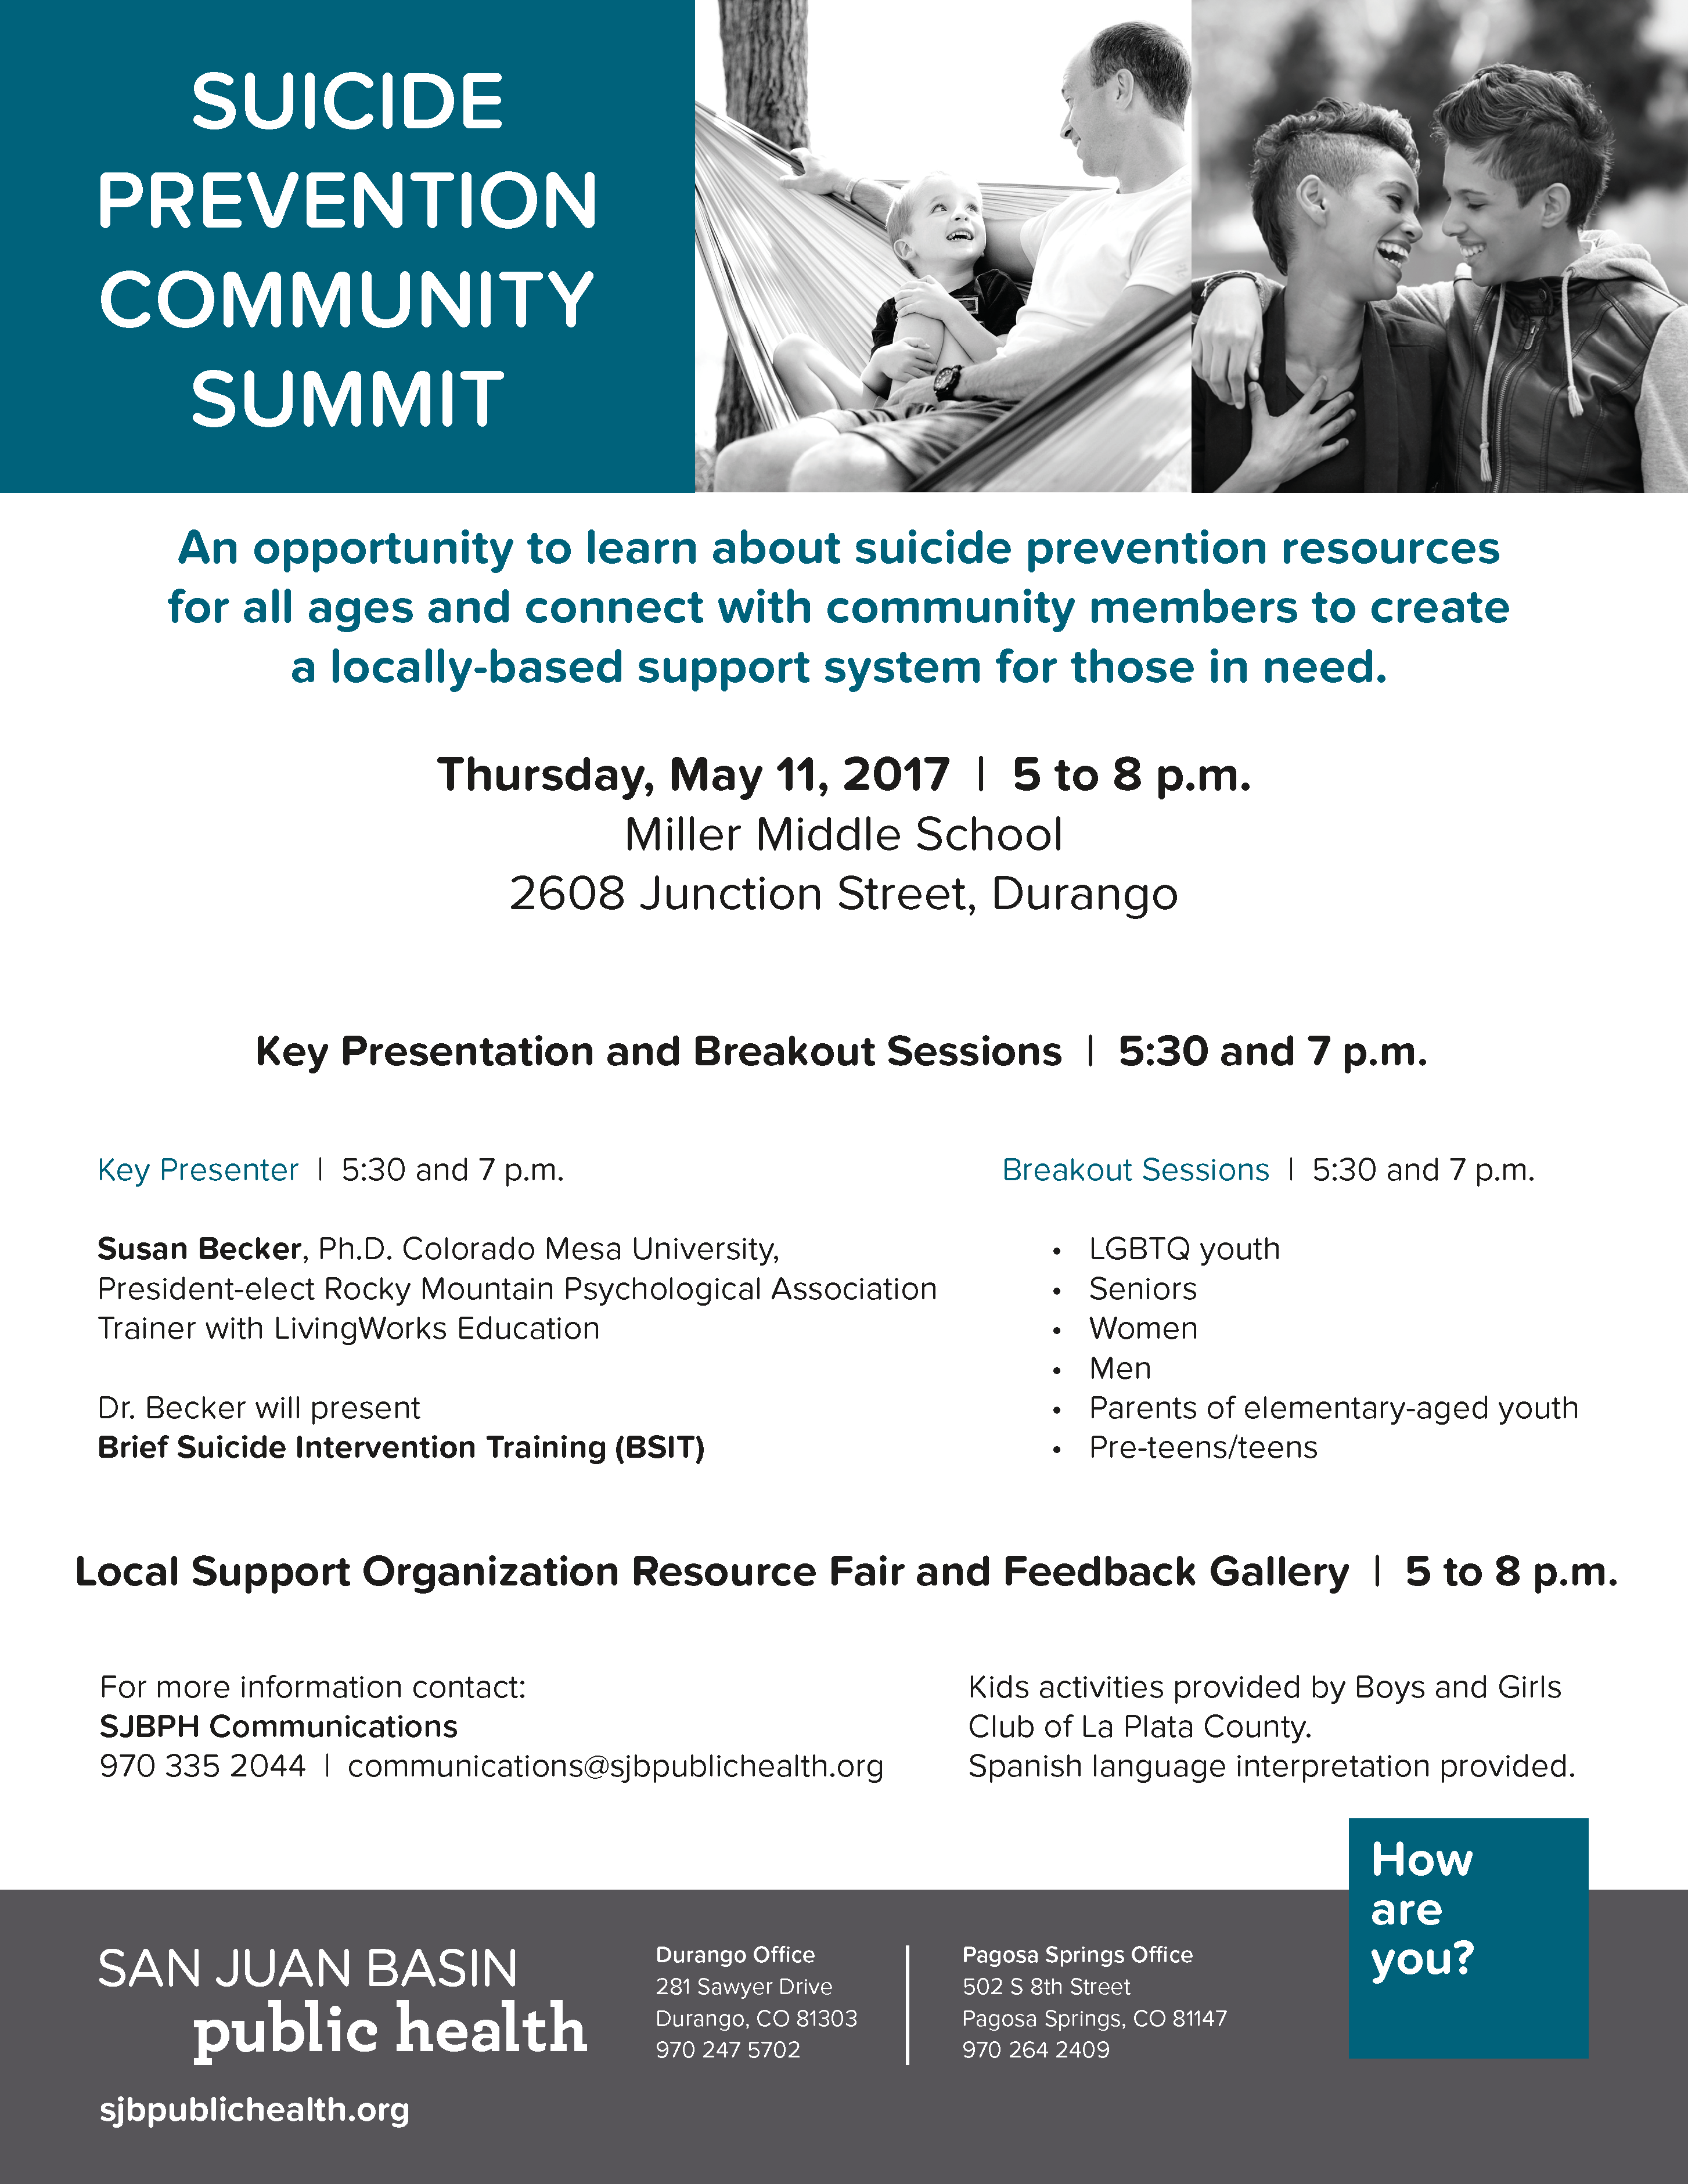 Suicide Prevention Community Summit Taking Place On May